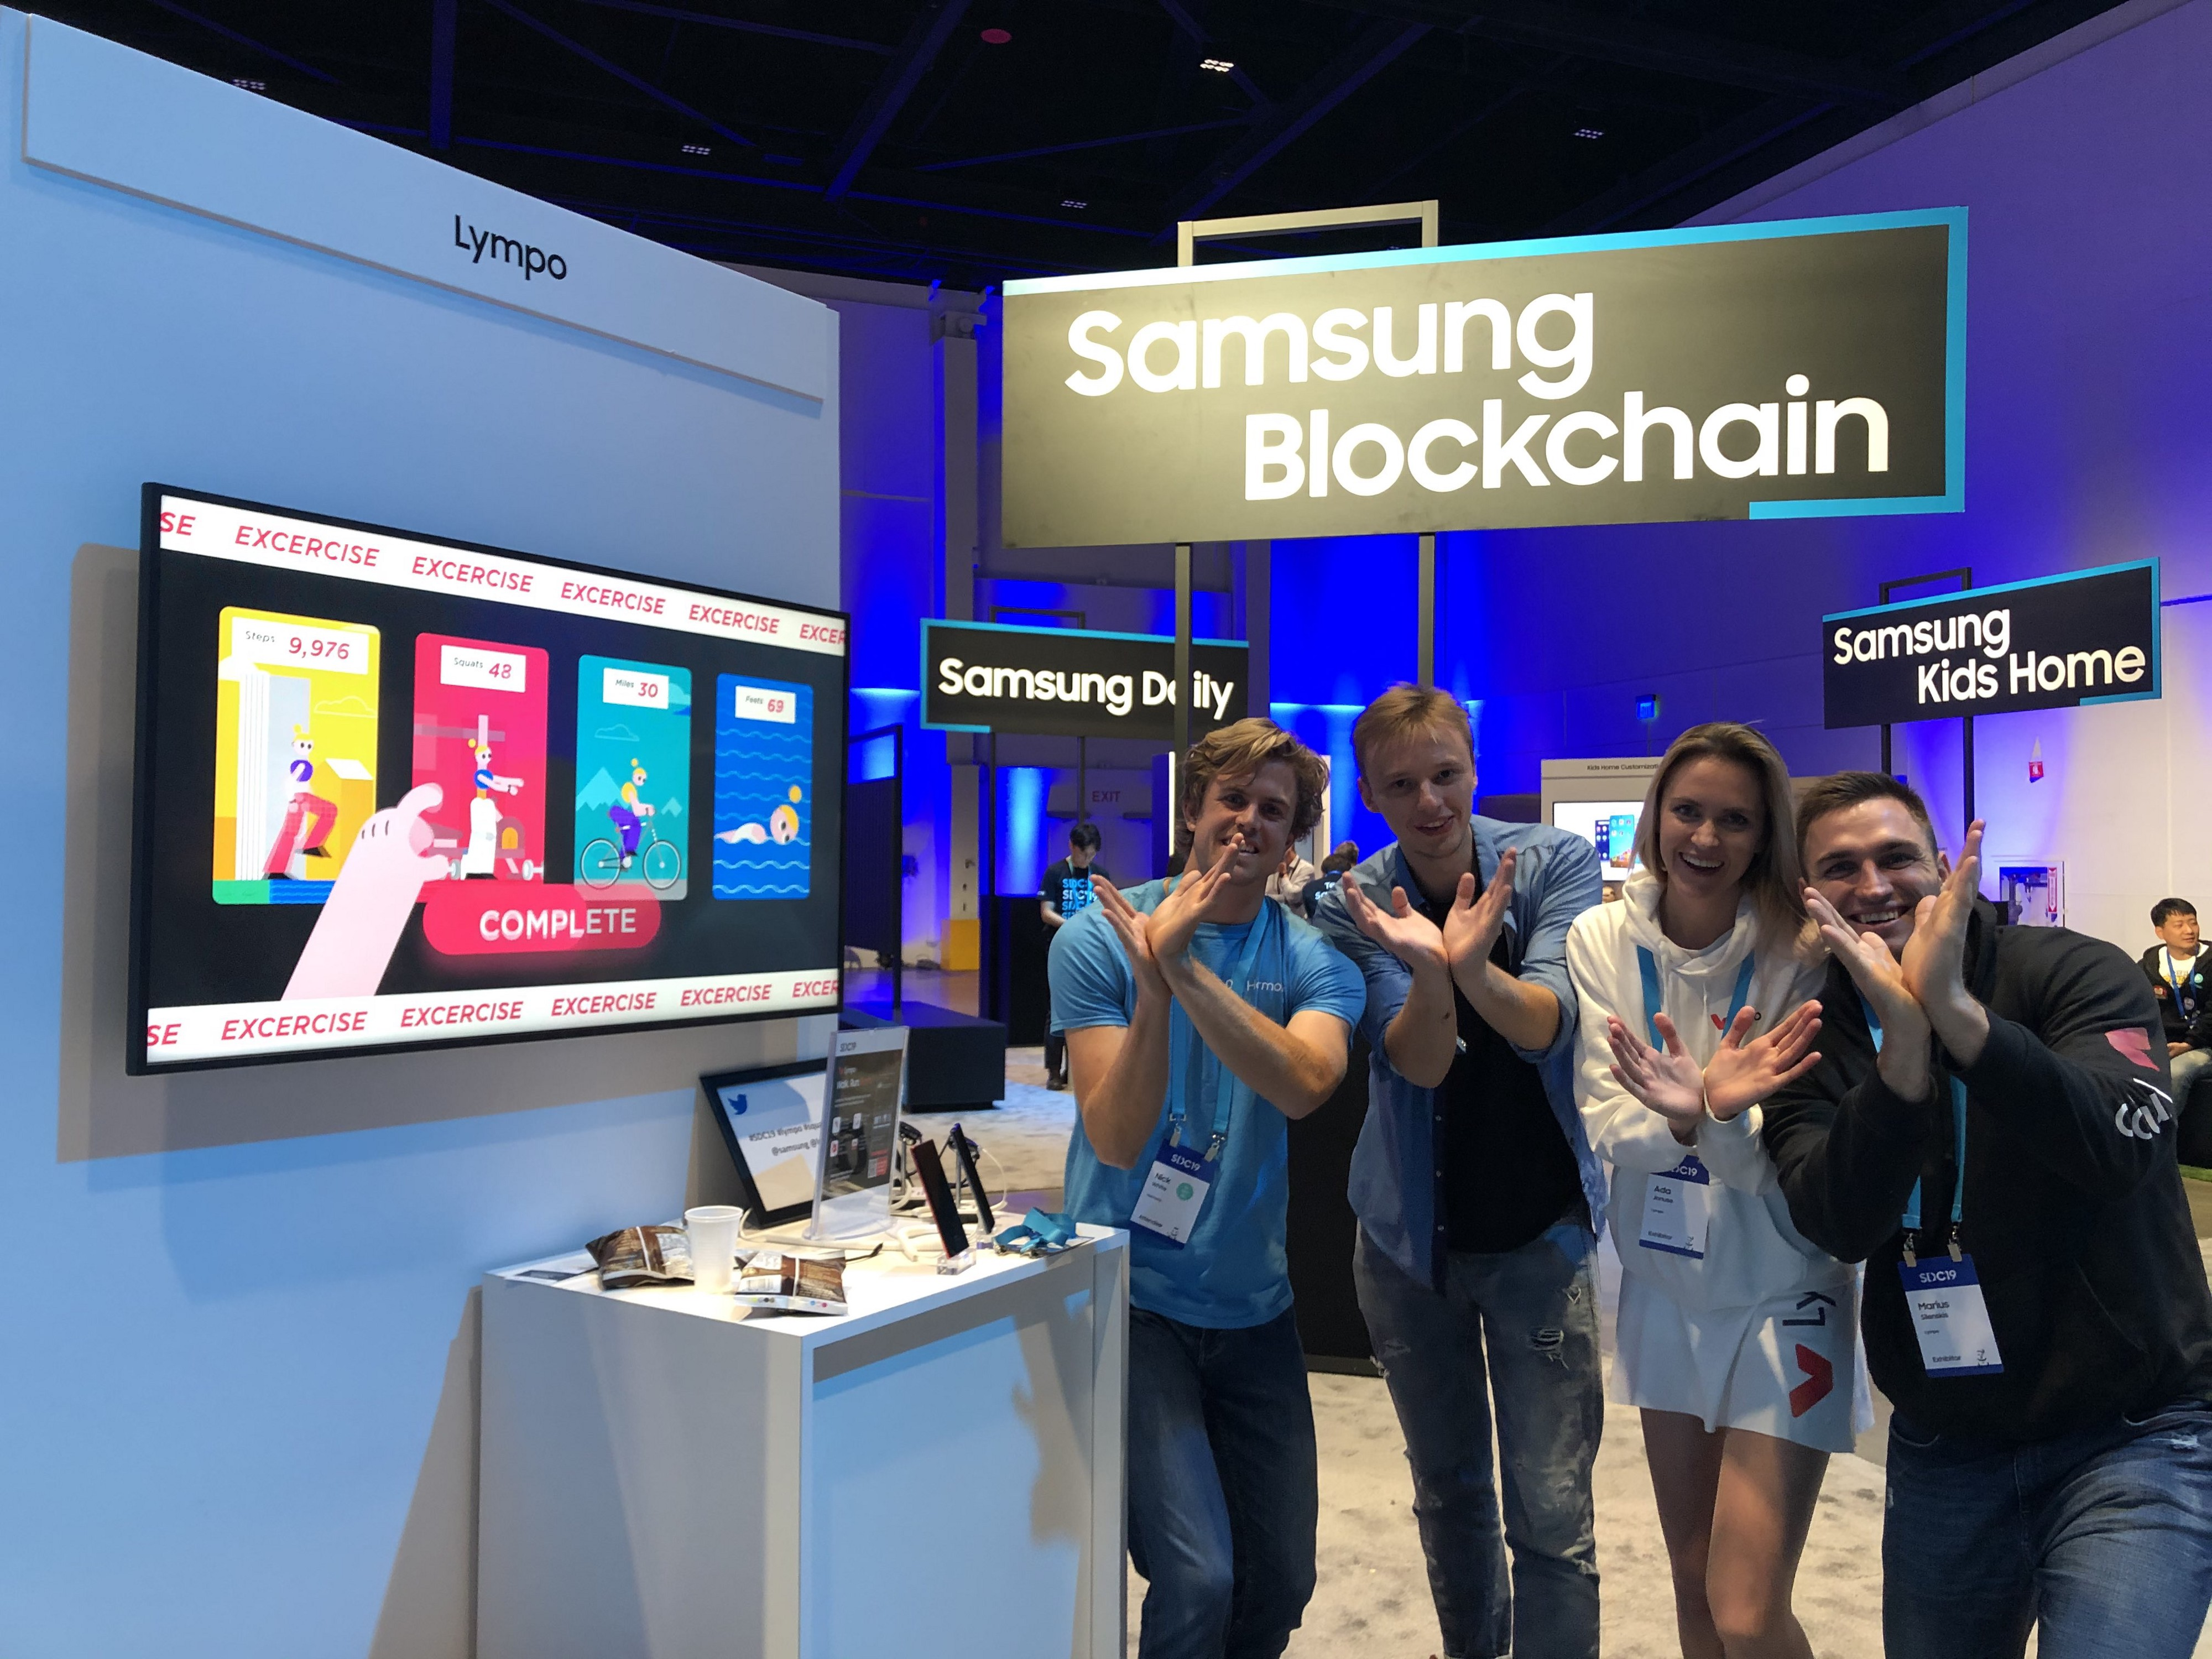 Lympo booth near Samsung Blockchain at SDC